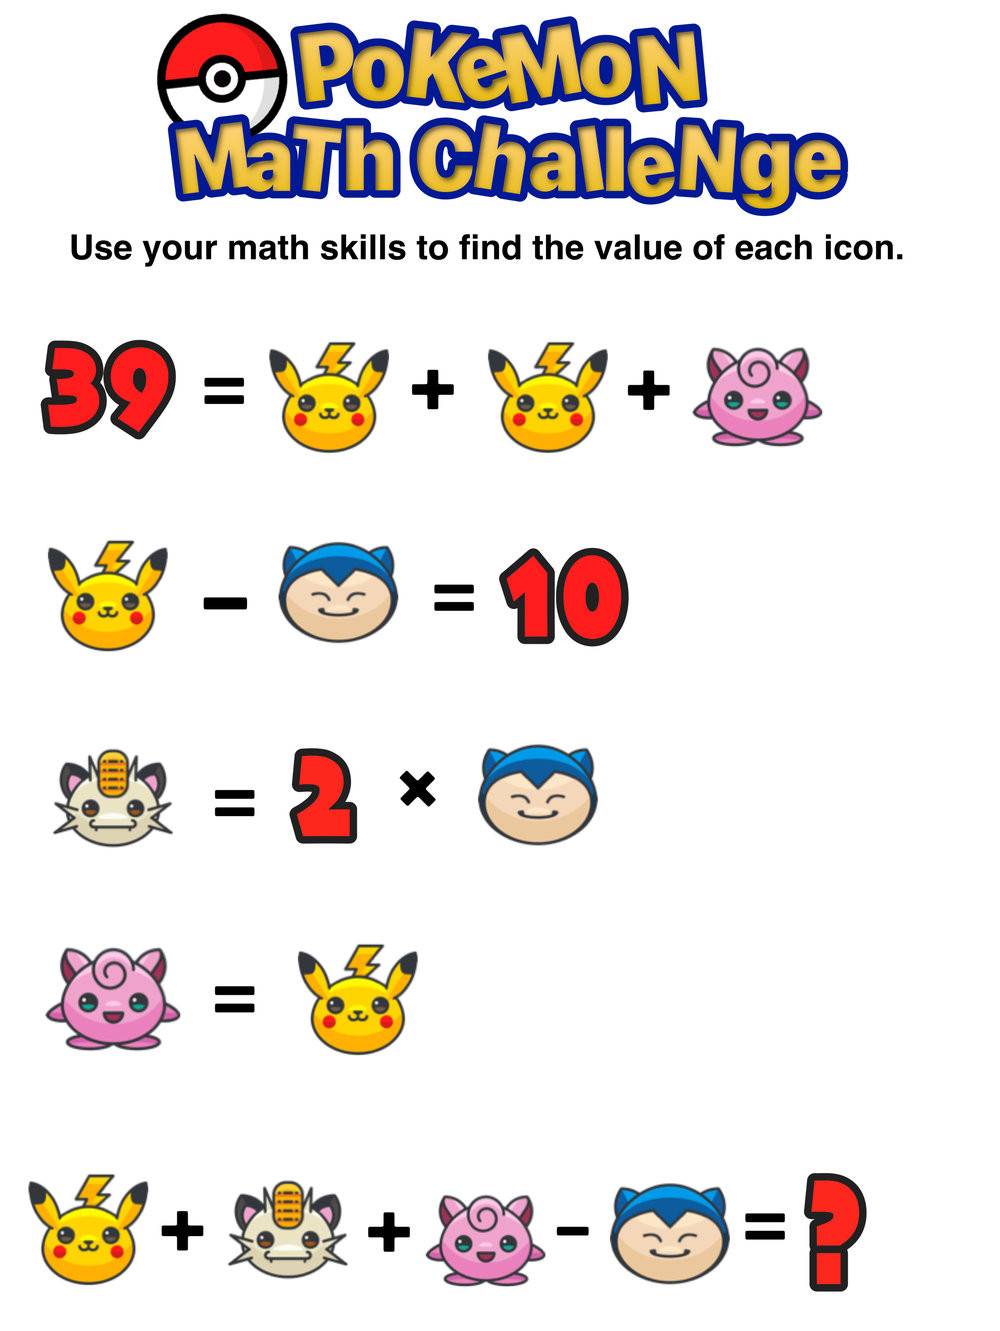 Challenge Math Worksheets Have You Seen these Free Pokémon Math Puzzles — Mashup Math